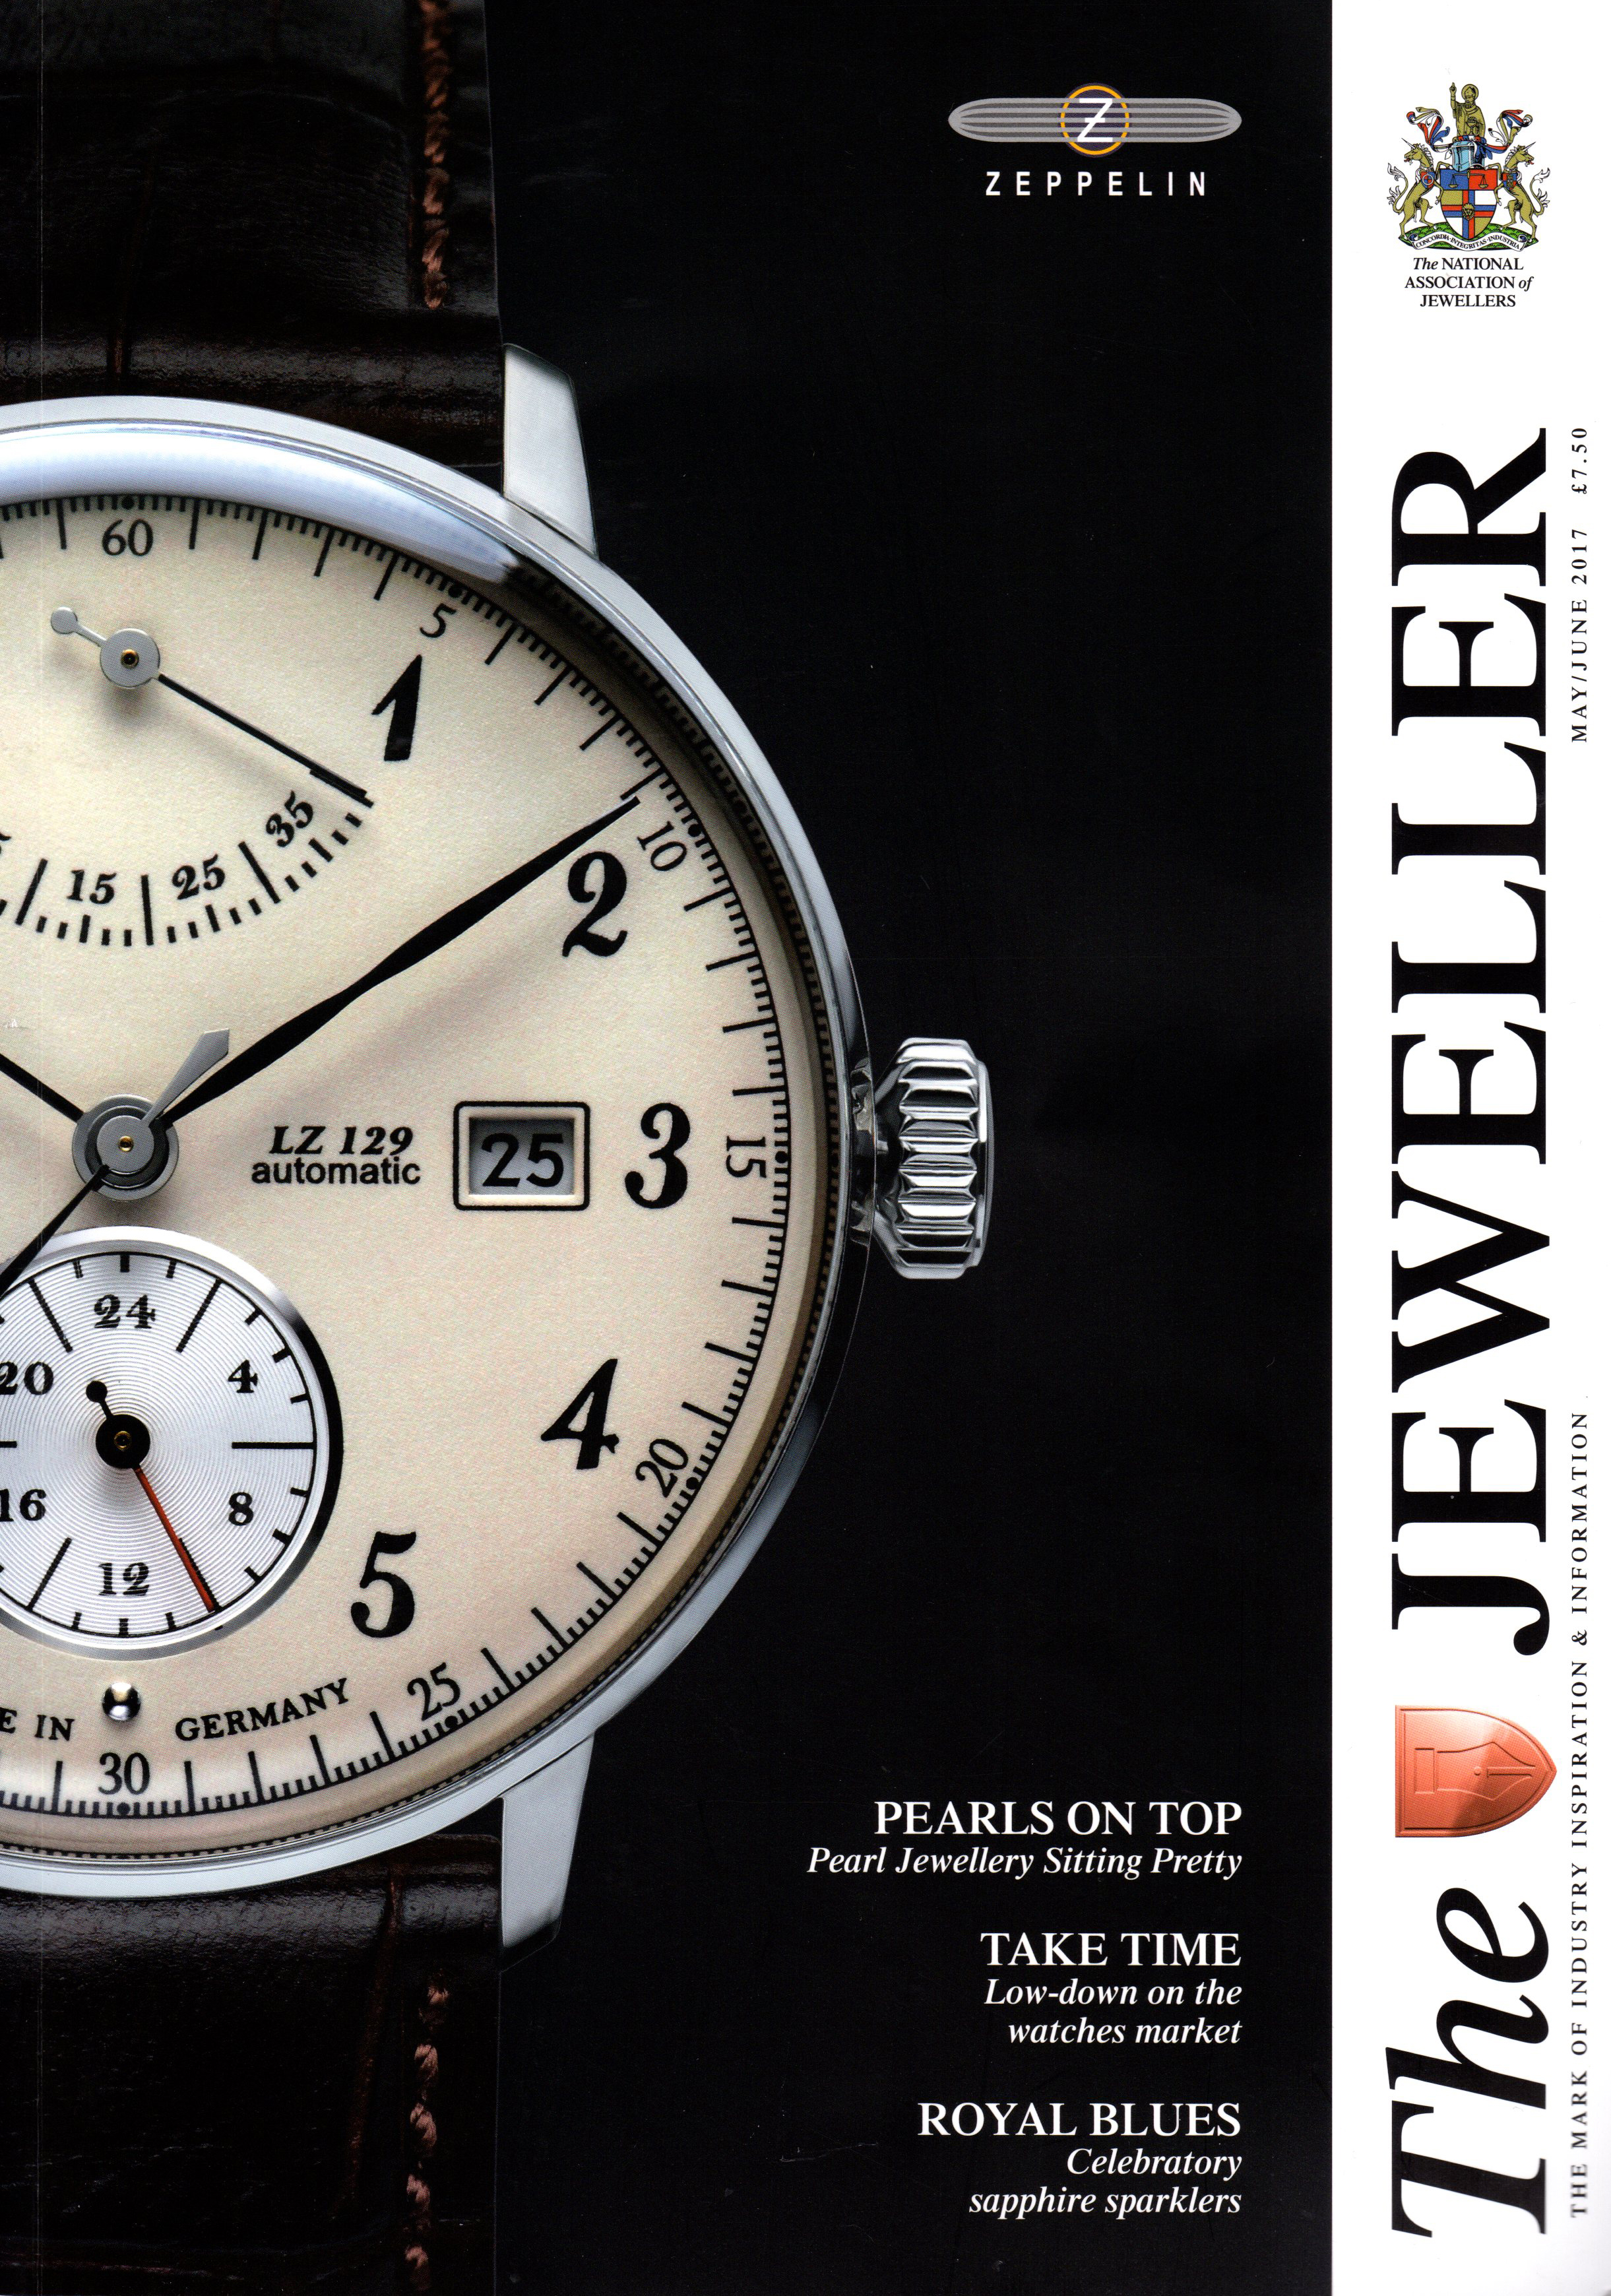 The Jeweller May/June 2017